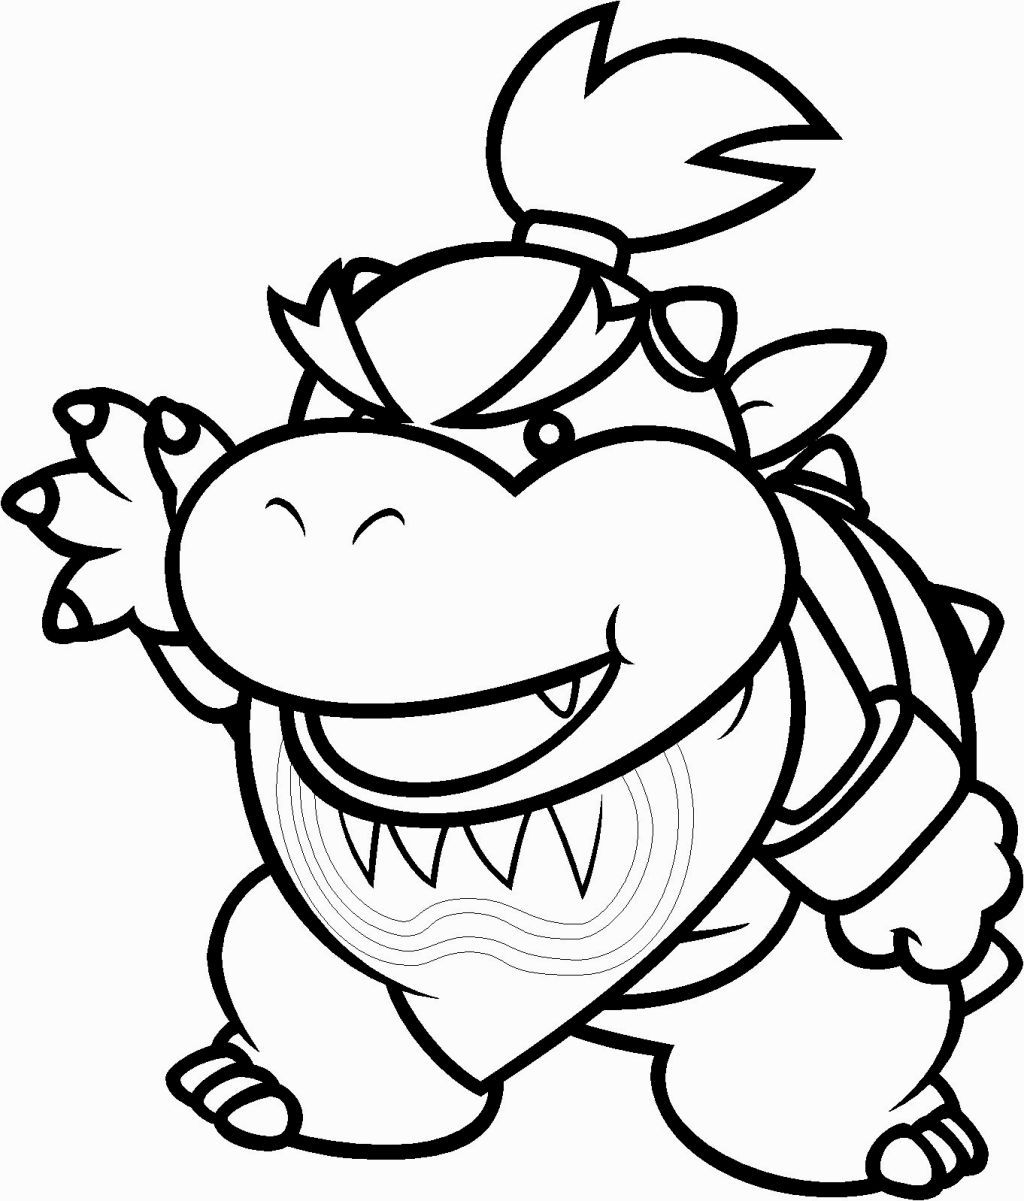 Mario vs Bowser Coloring page Crafts with Colten Pinterest